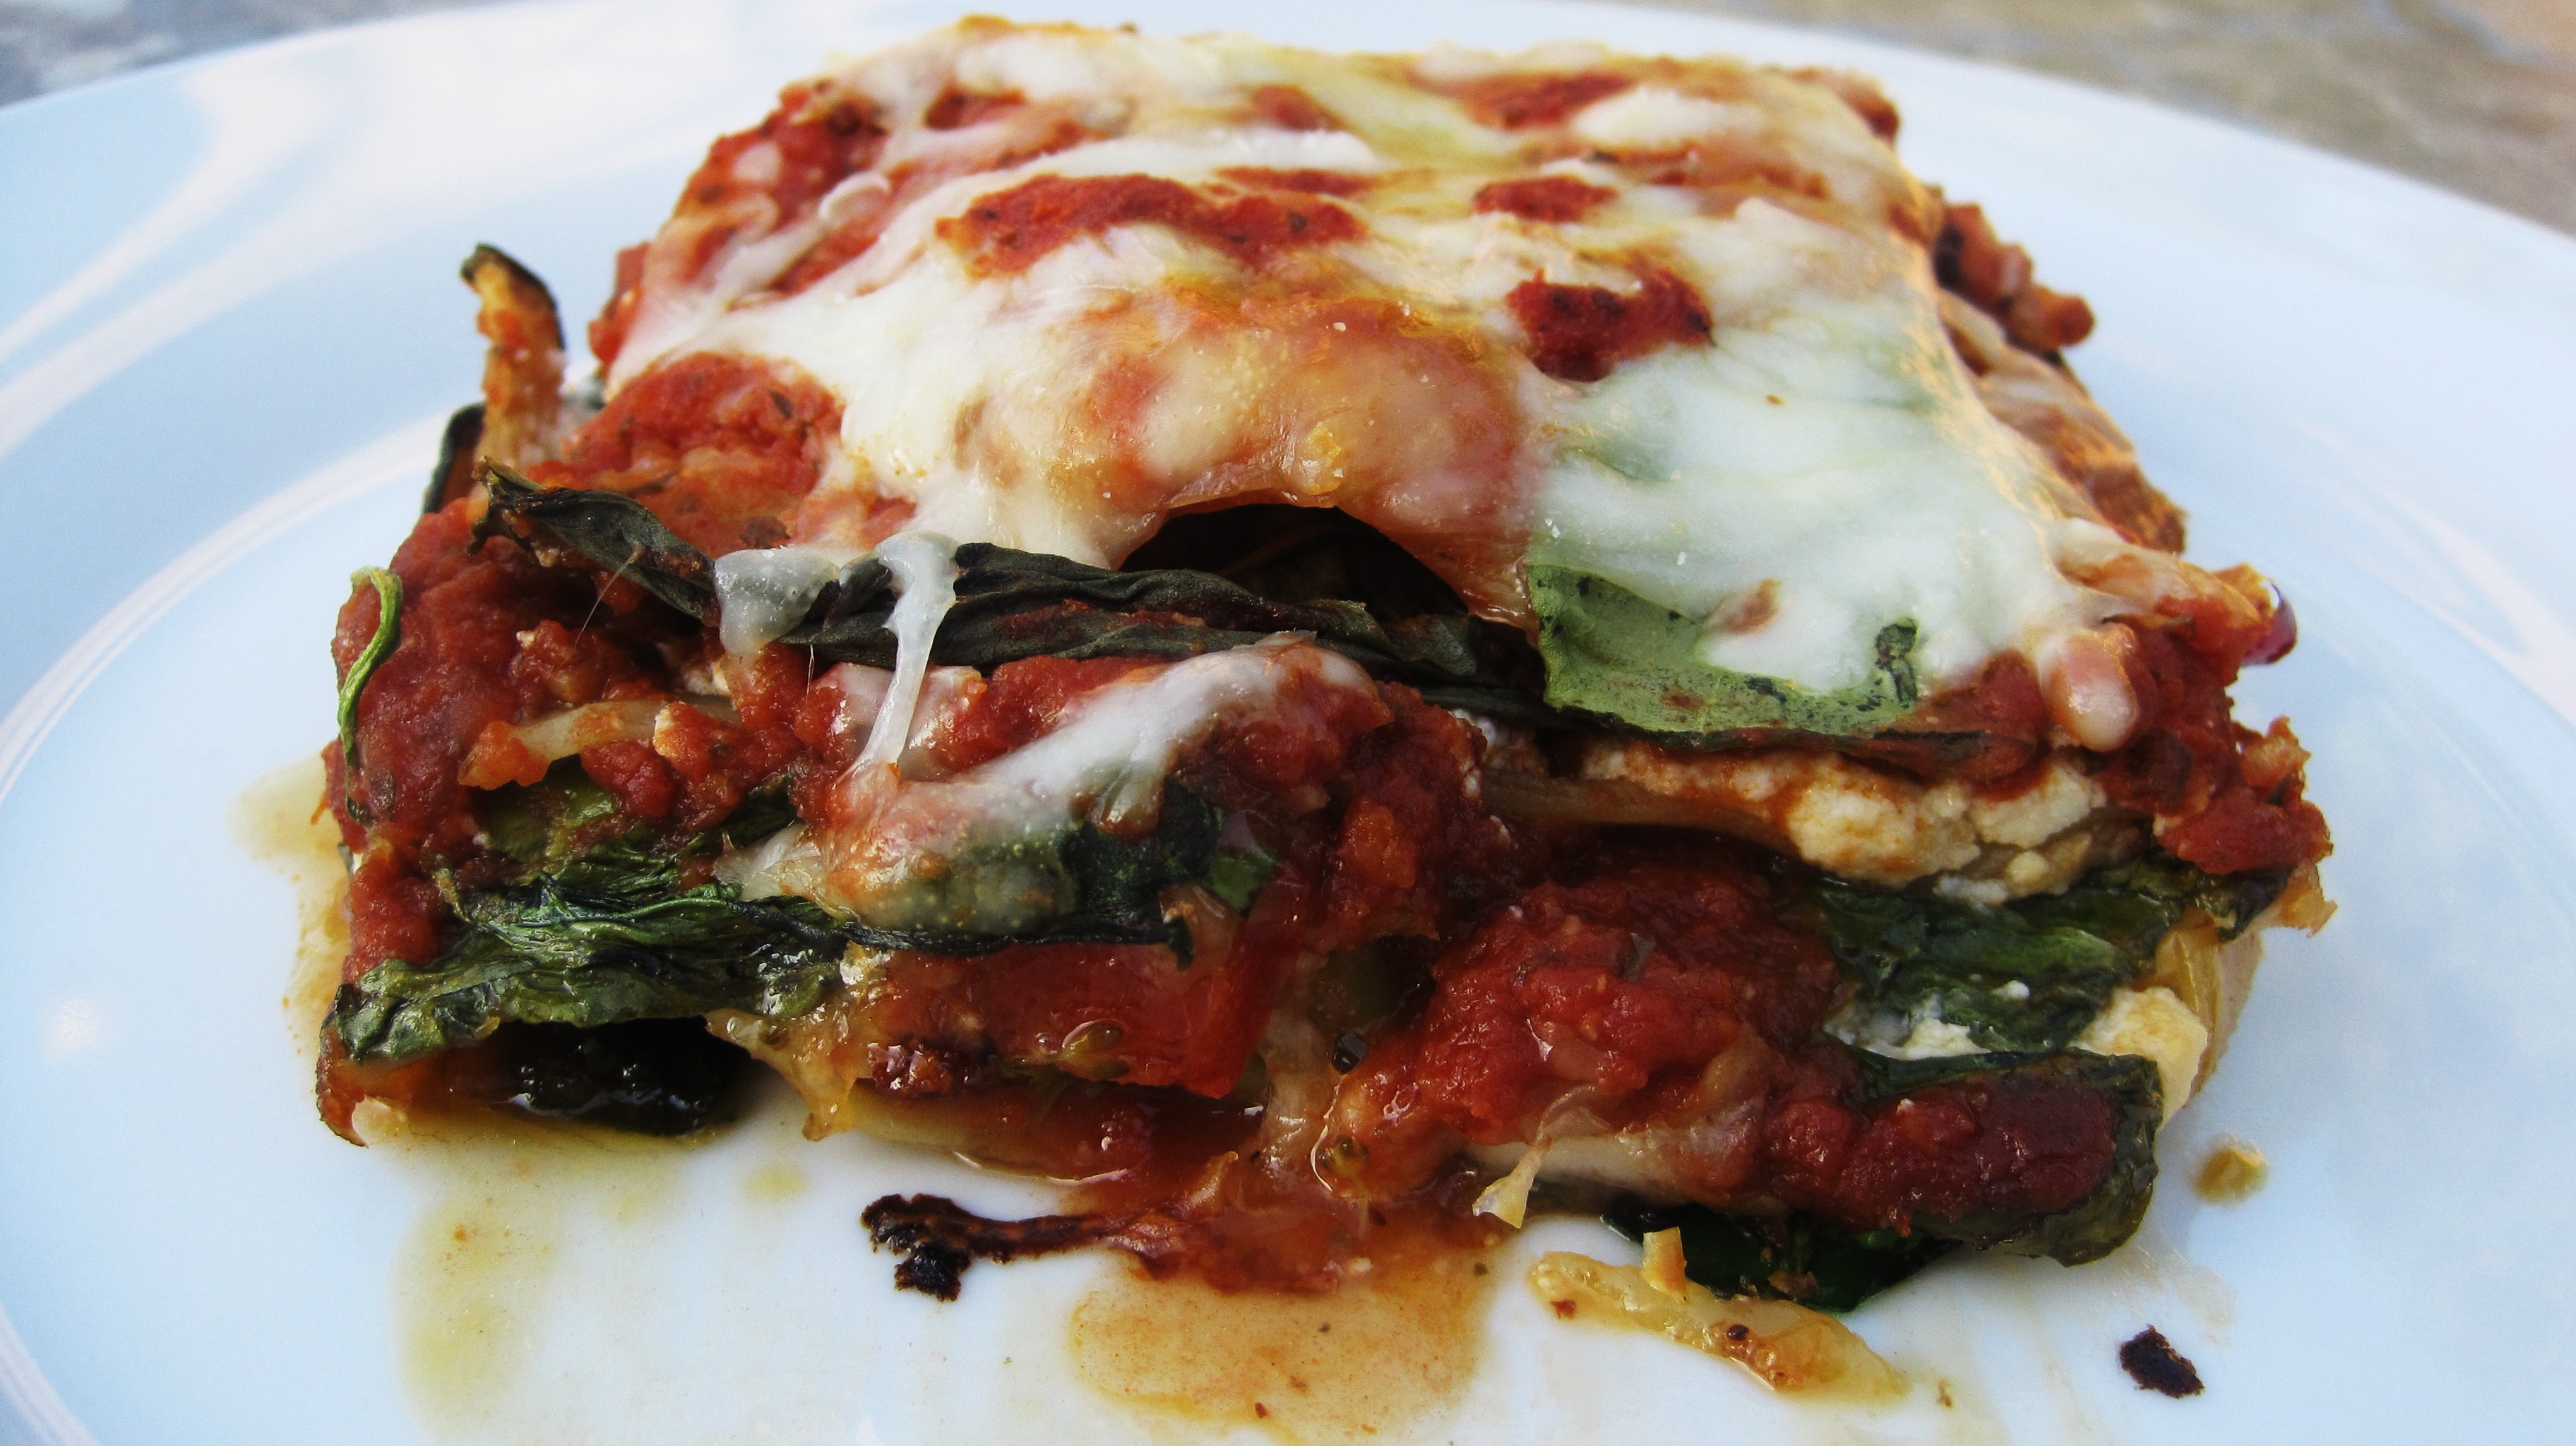 ... vegetable lasagna cheesy baked eggplant recipe the eggplant is